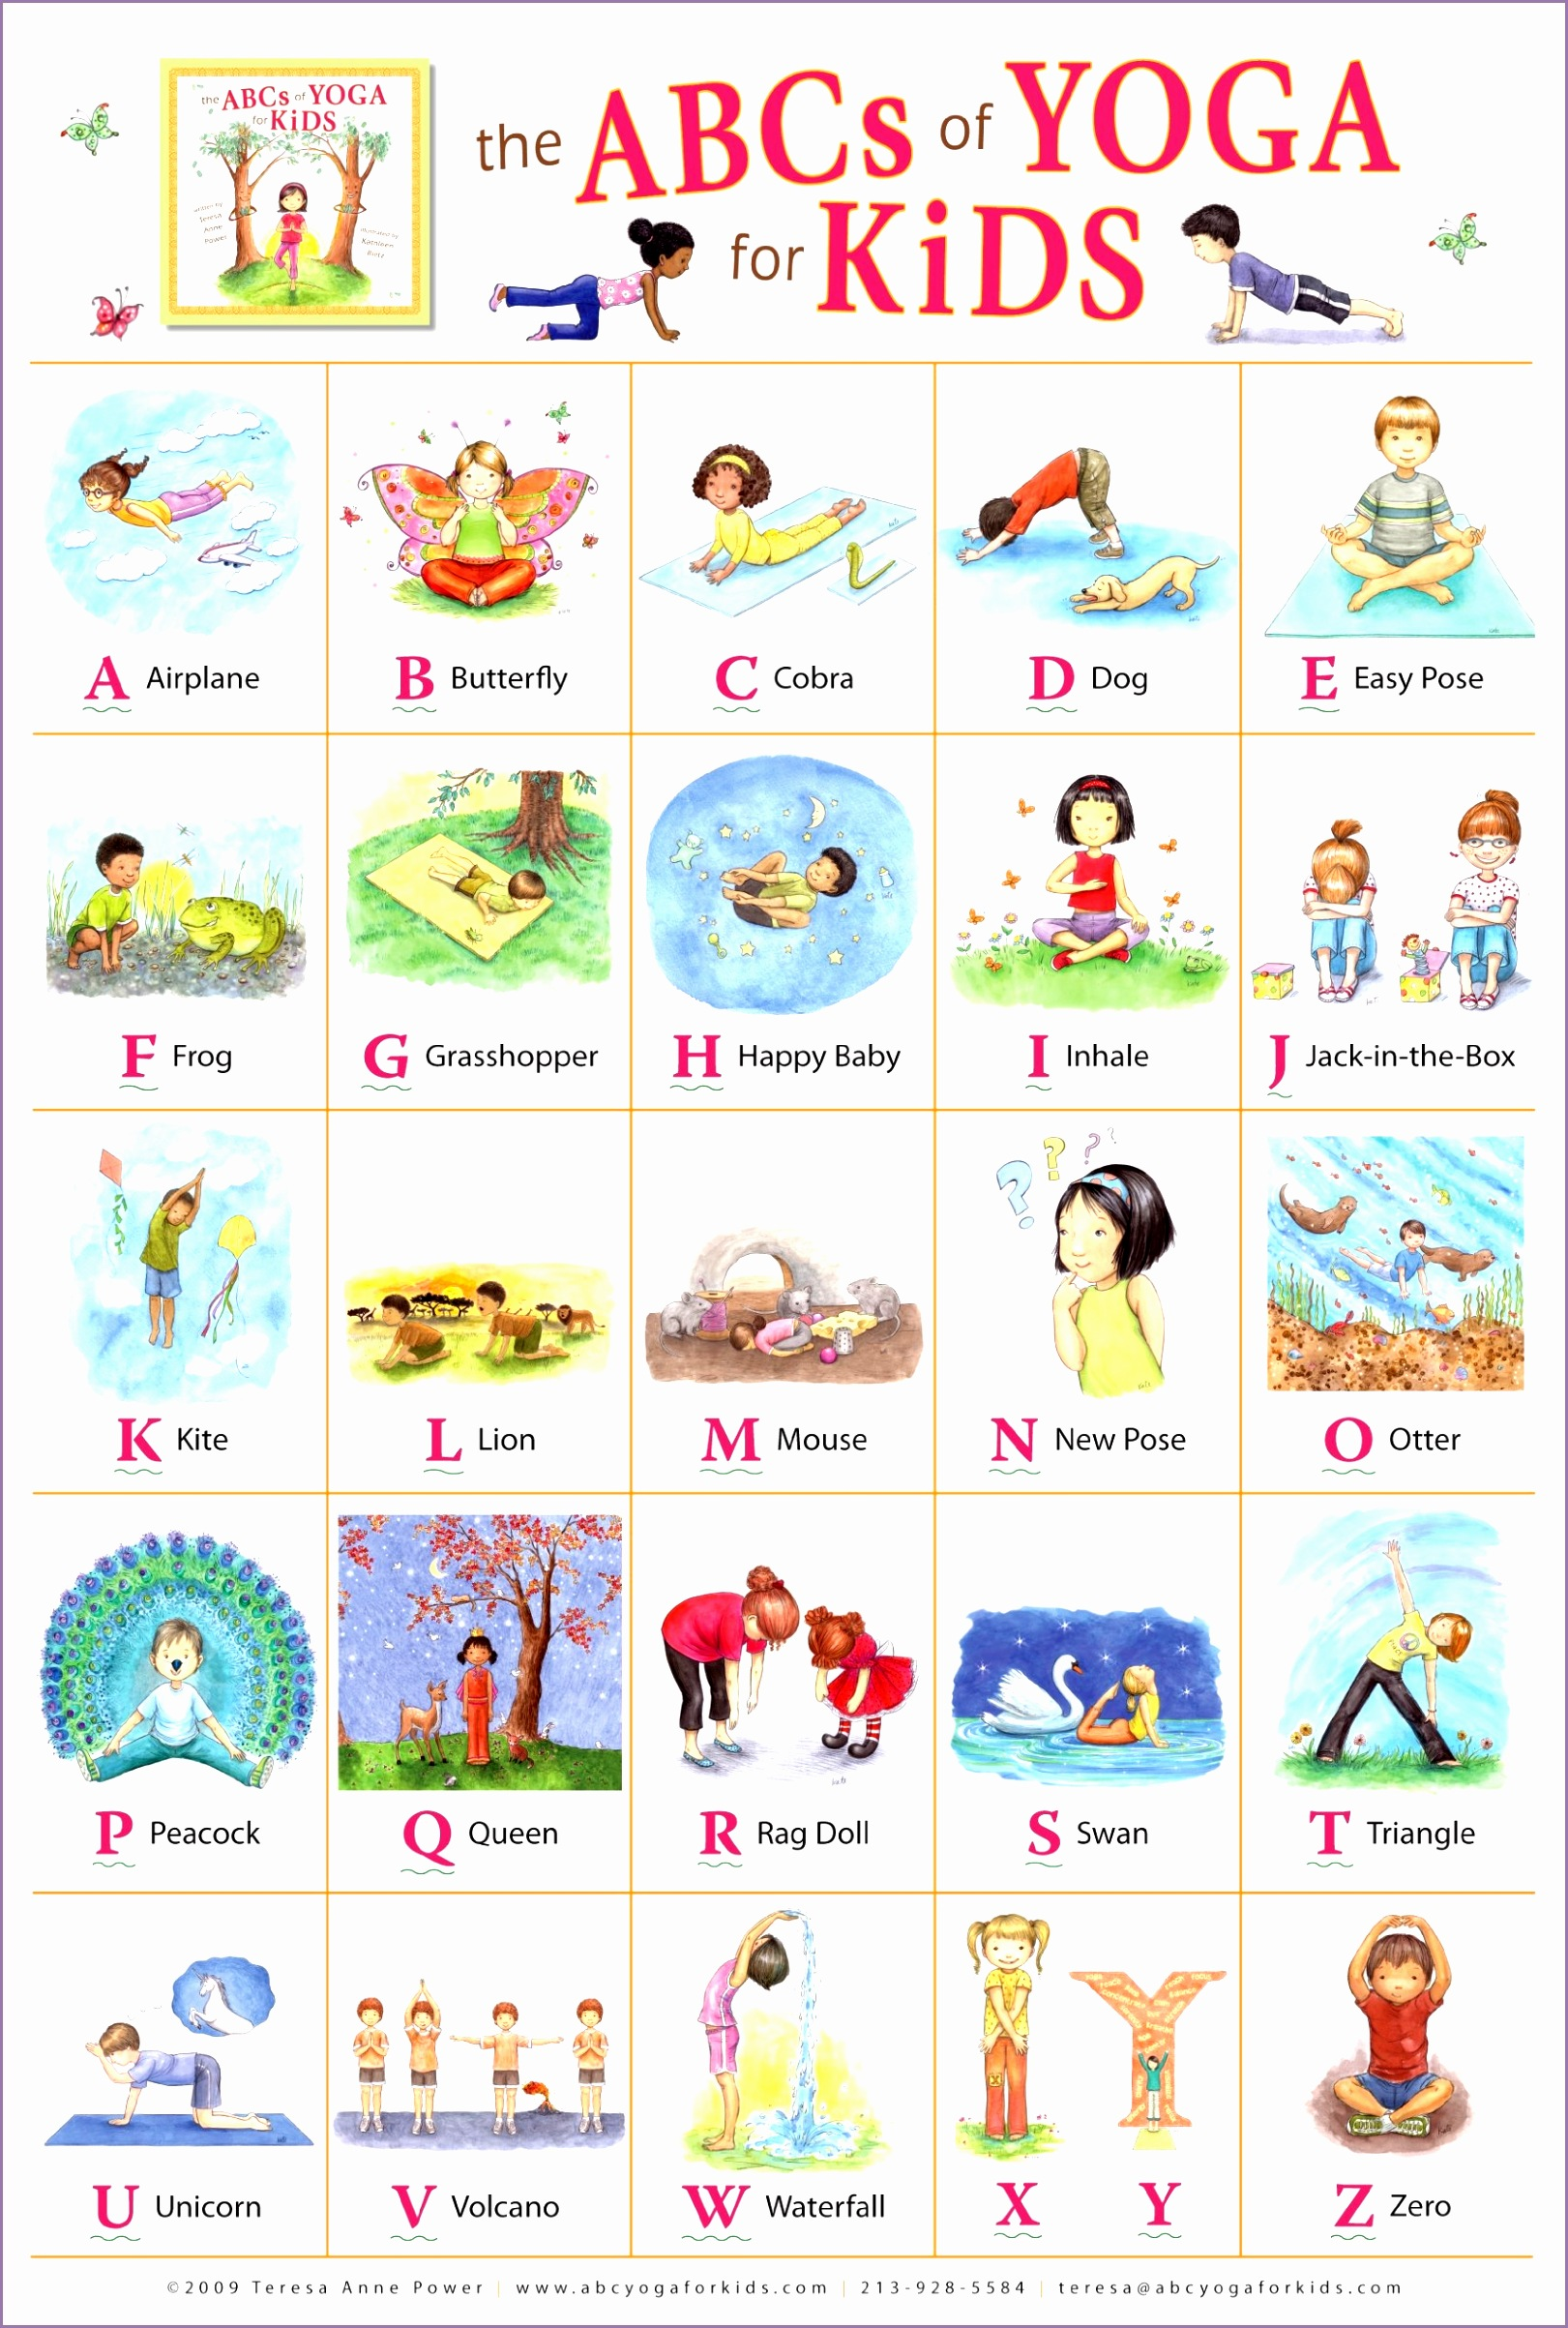 photo about Printable Yoga Poses for Preschoolers called yoga poses for youngsters printable